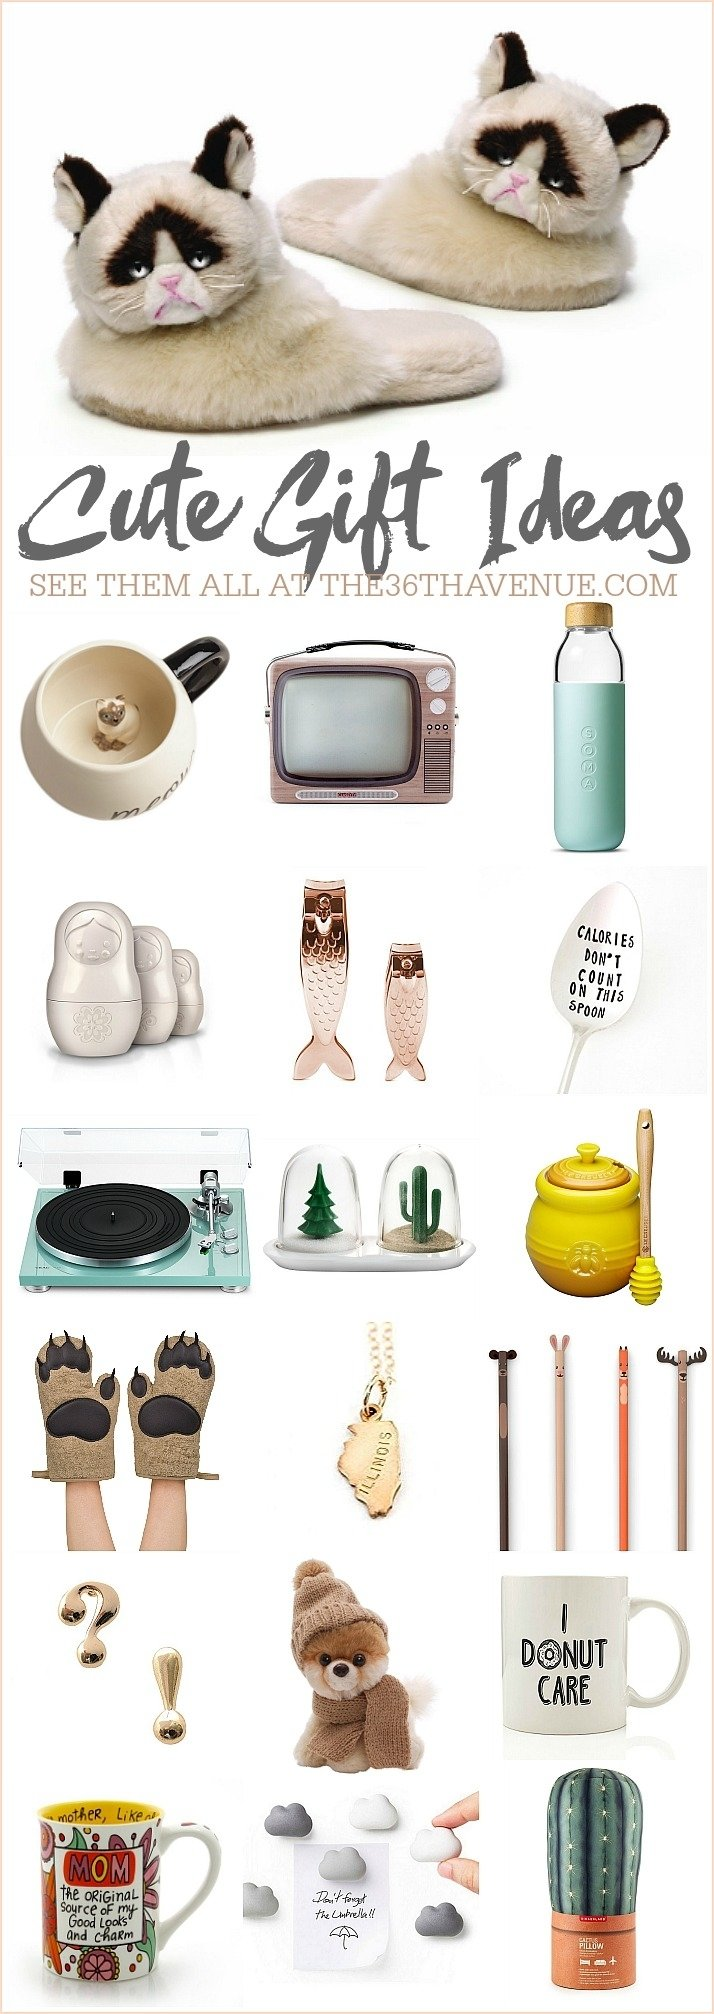 10 Beautiful Gift Ideas For A Woman 25 gift ideas cute women gifts the 36th avenue 6 2021